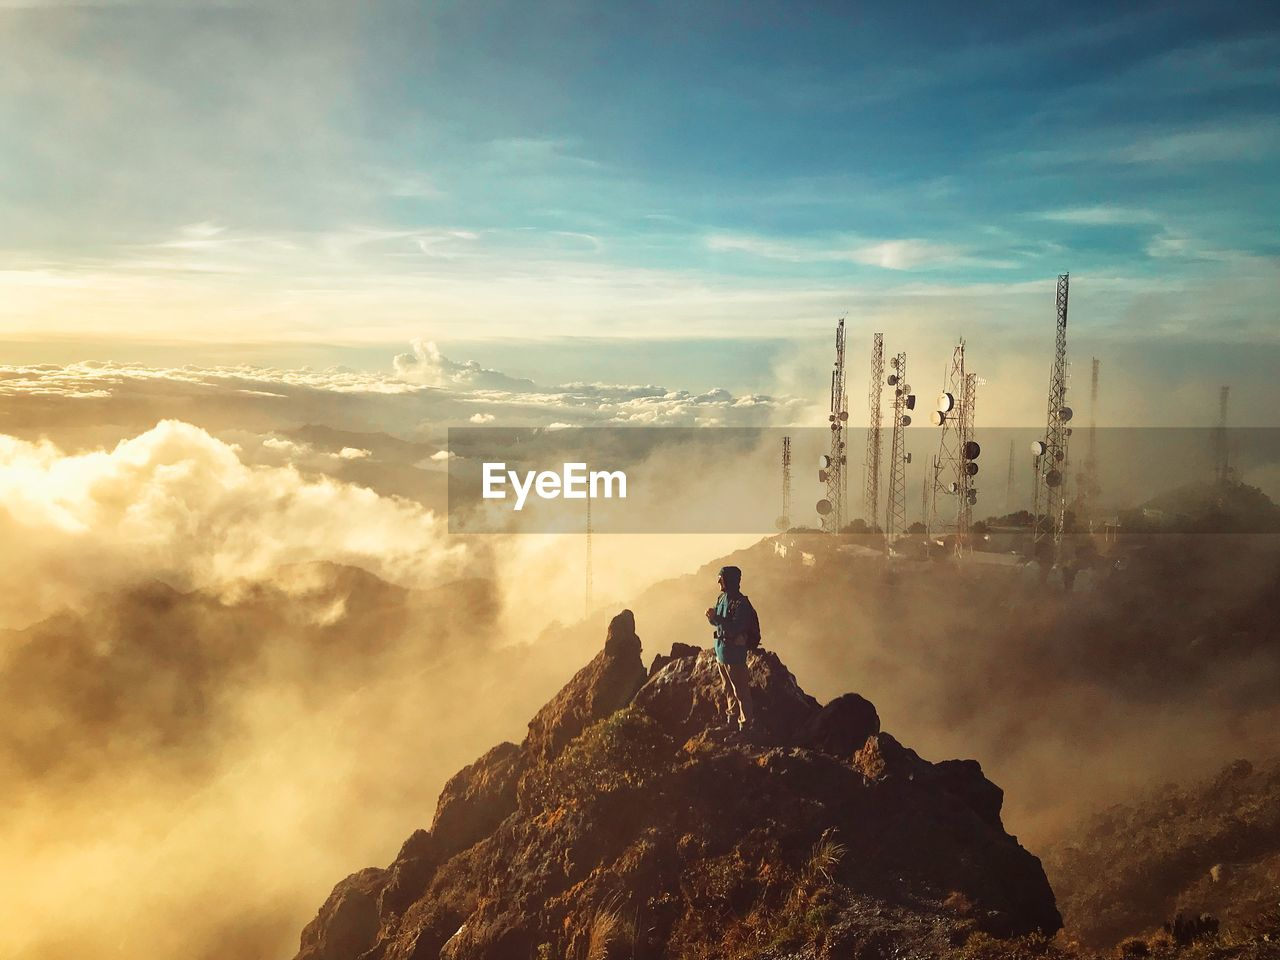 cloud - sky, sky, beauty in nature, mountain, nature, scenics - nature, rock, real people, leisure activity, tranquil scene, tranquility, solid, outdoors, rock - object, day, adventure, people, non-urban scene, sitting, lifestyles, mountain peak, at the edge of